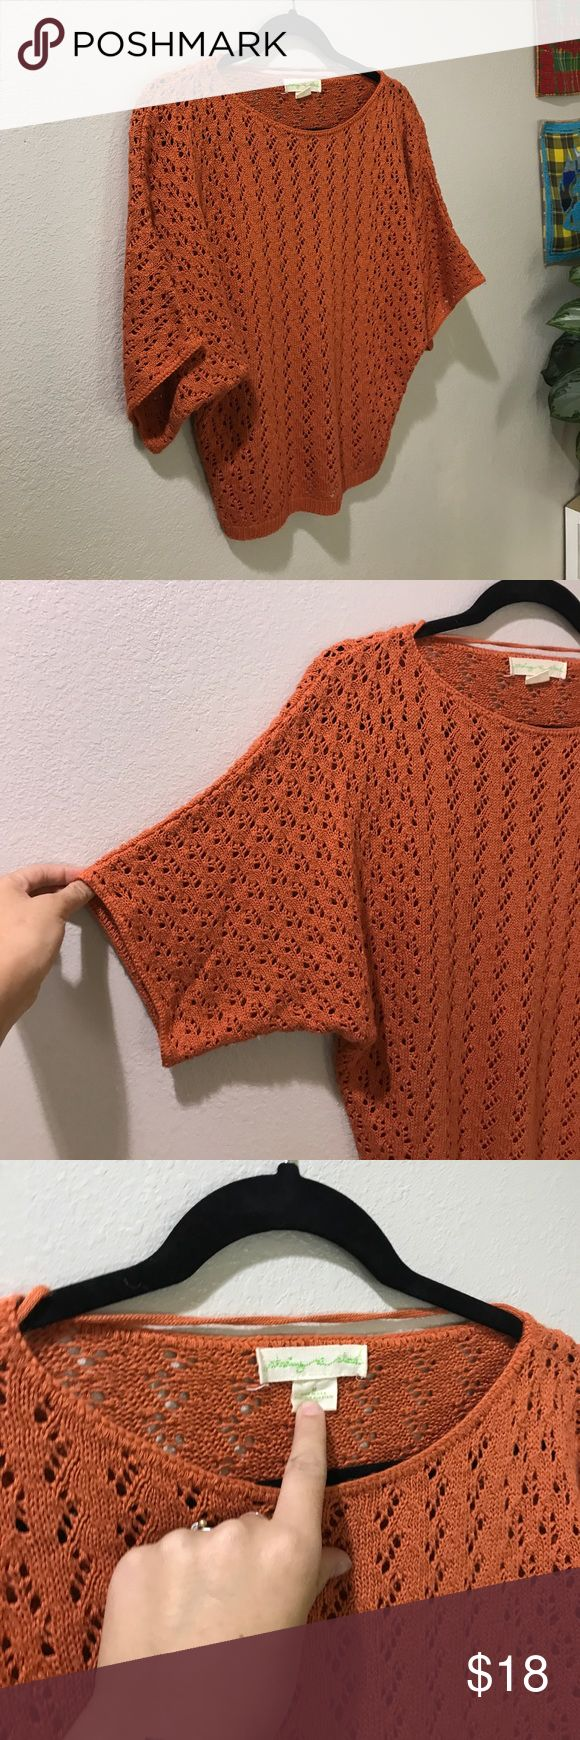 UO SEEING STARS M CROCHET ORANGE BATWING SHIRT Super cute shirt Urban Outfitters Tops